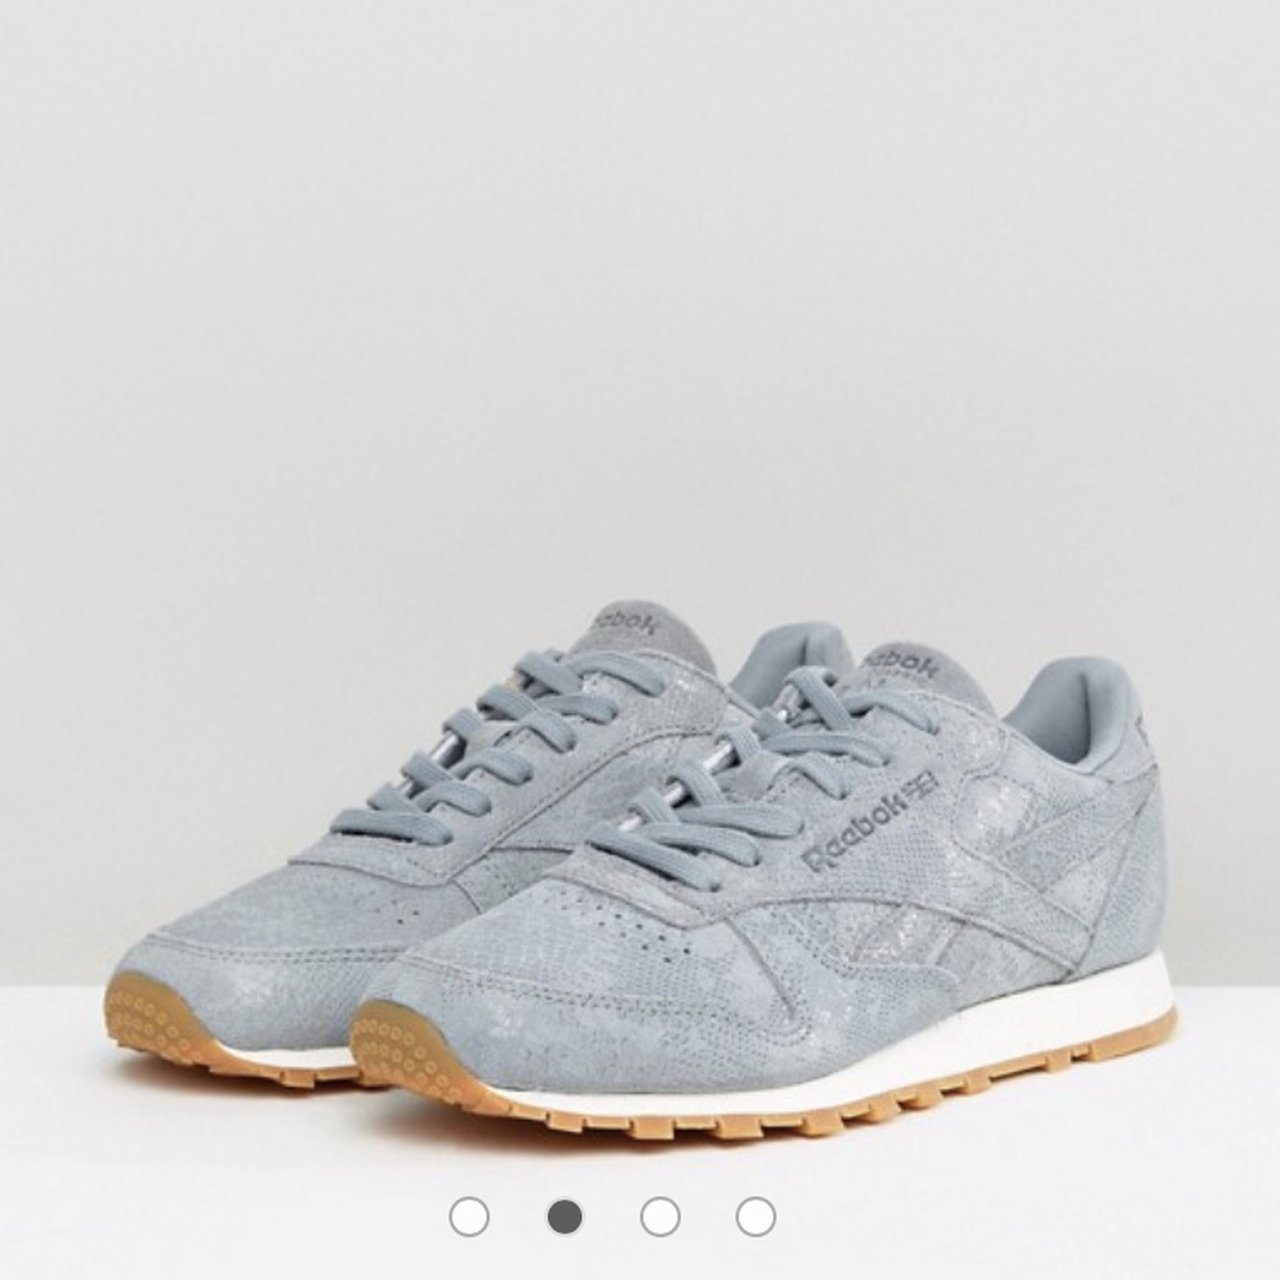 d78508c03cc Reebok trainers in grey exotic faux leather. Size UK 6.5 or - Depop